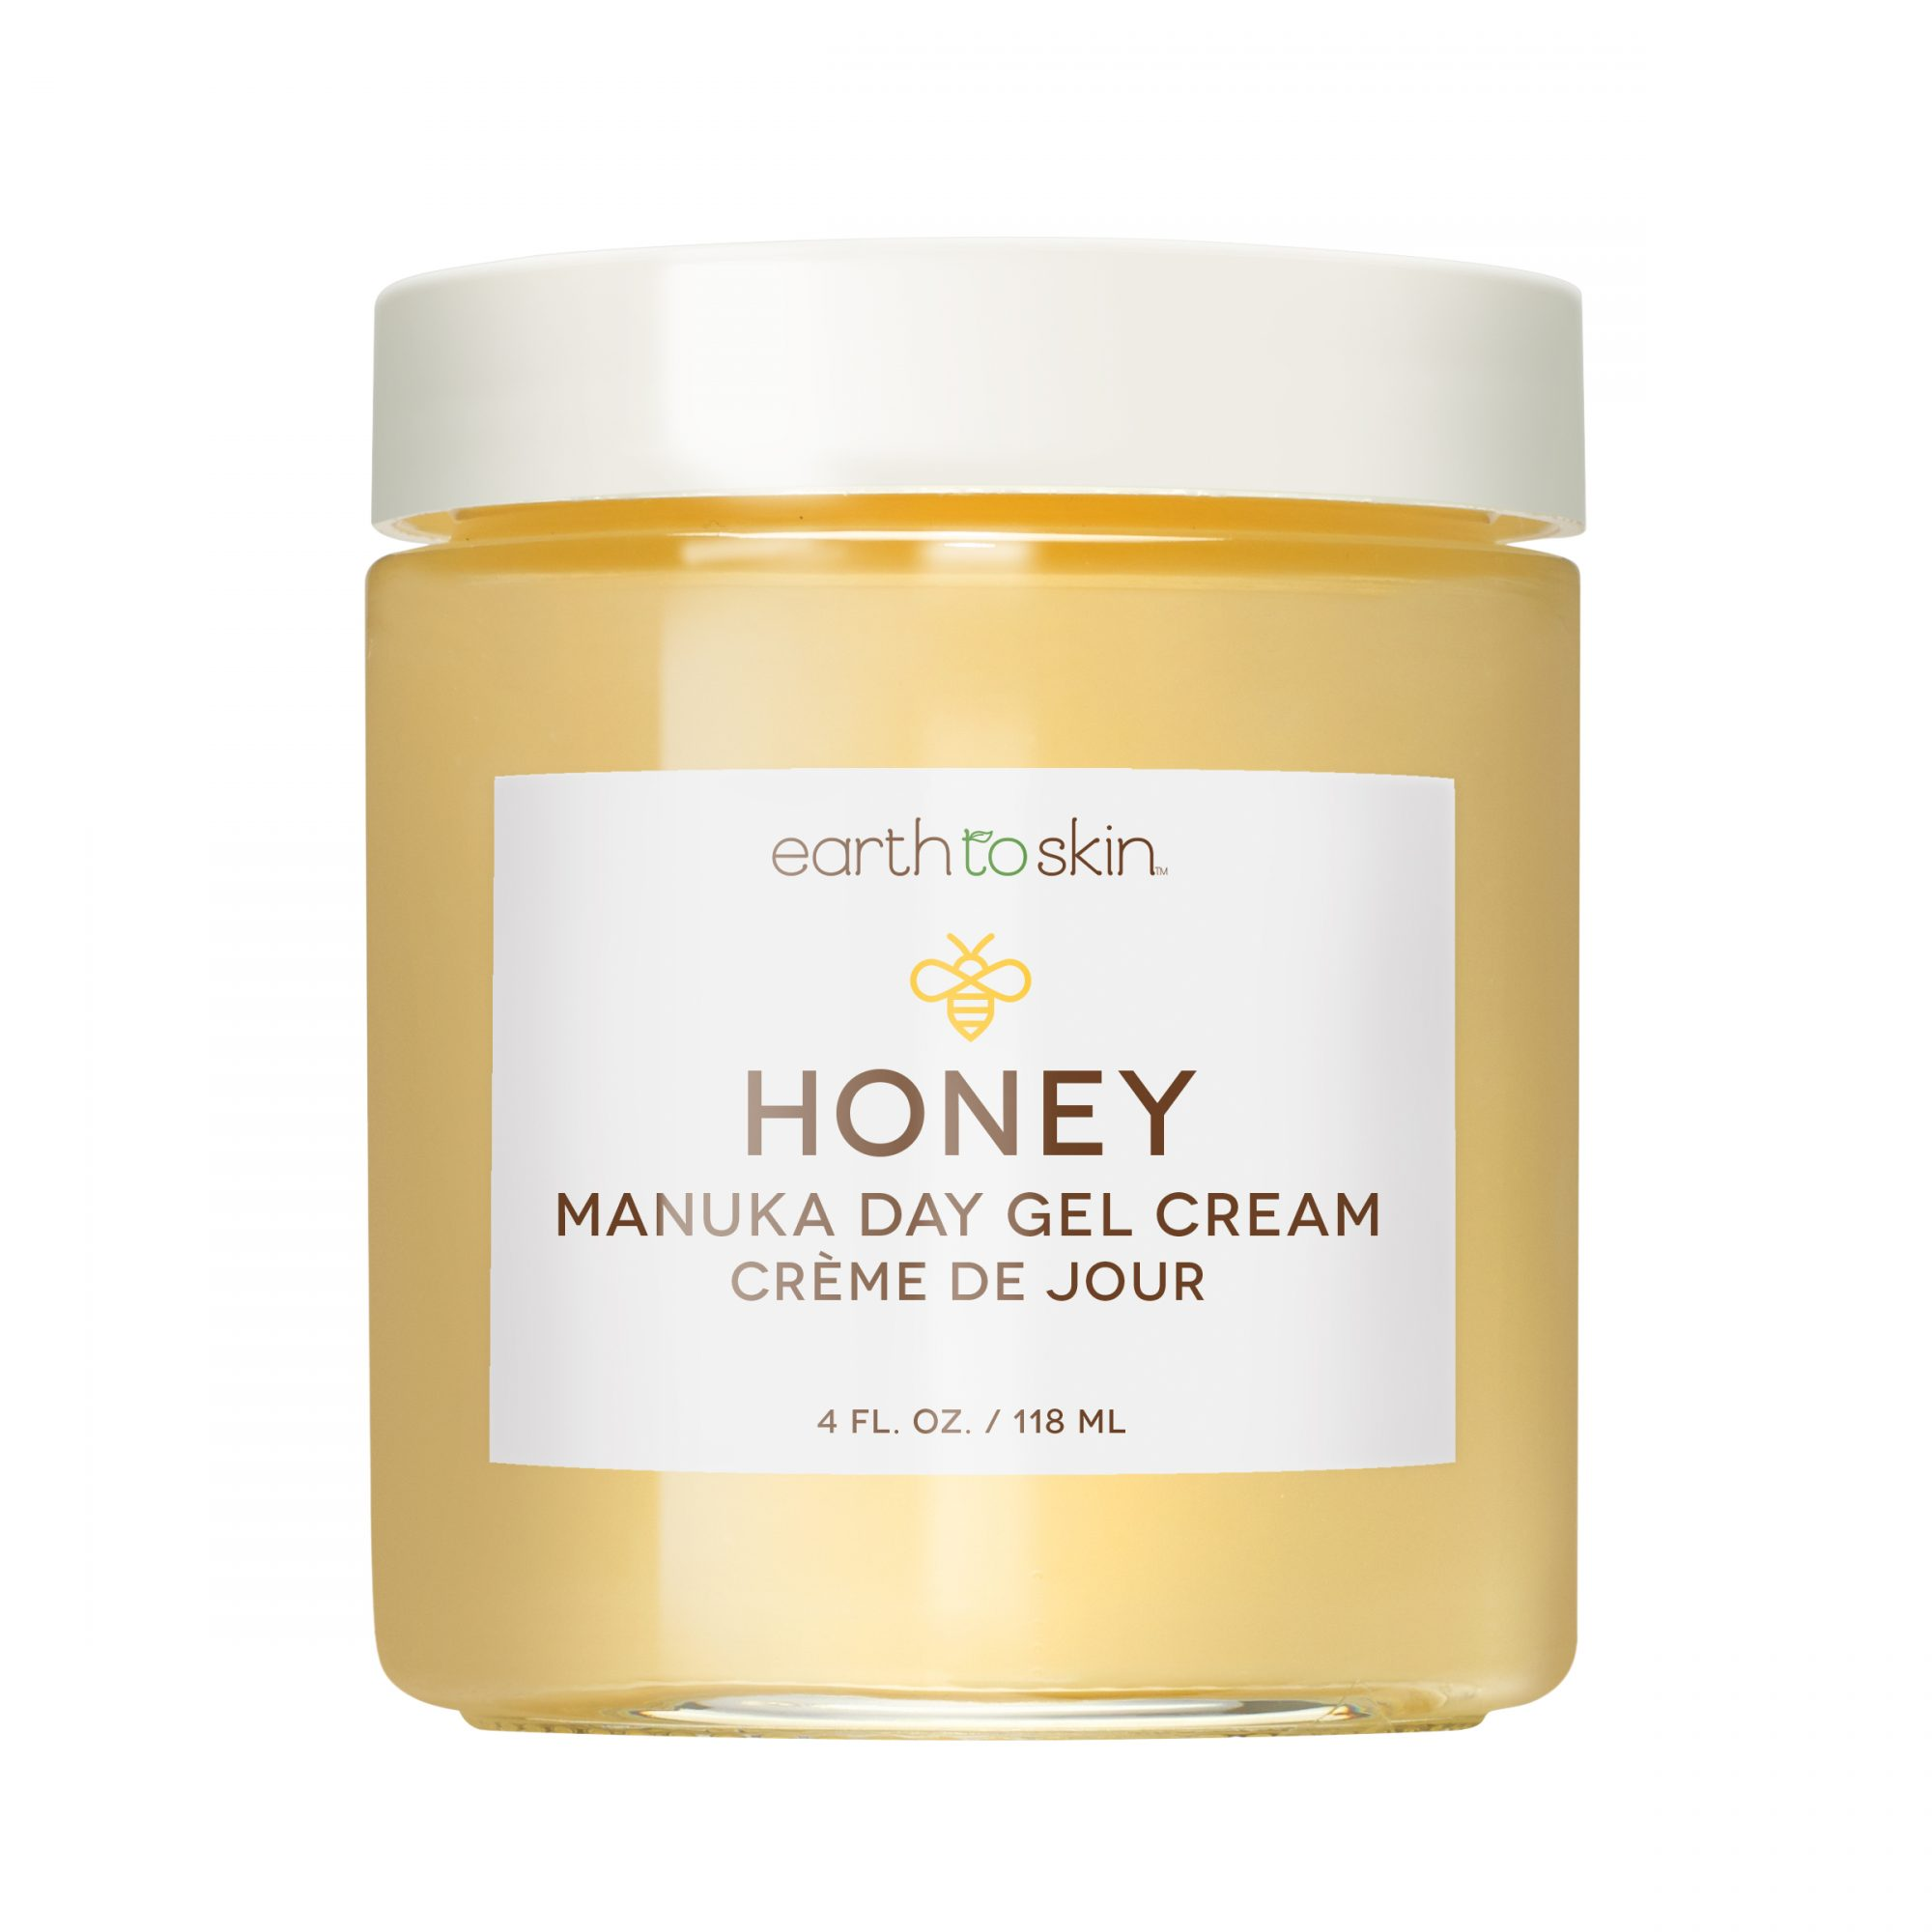 Earth to Skin Honey Manuka Calming Day Gel Cream at Walmart